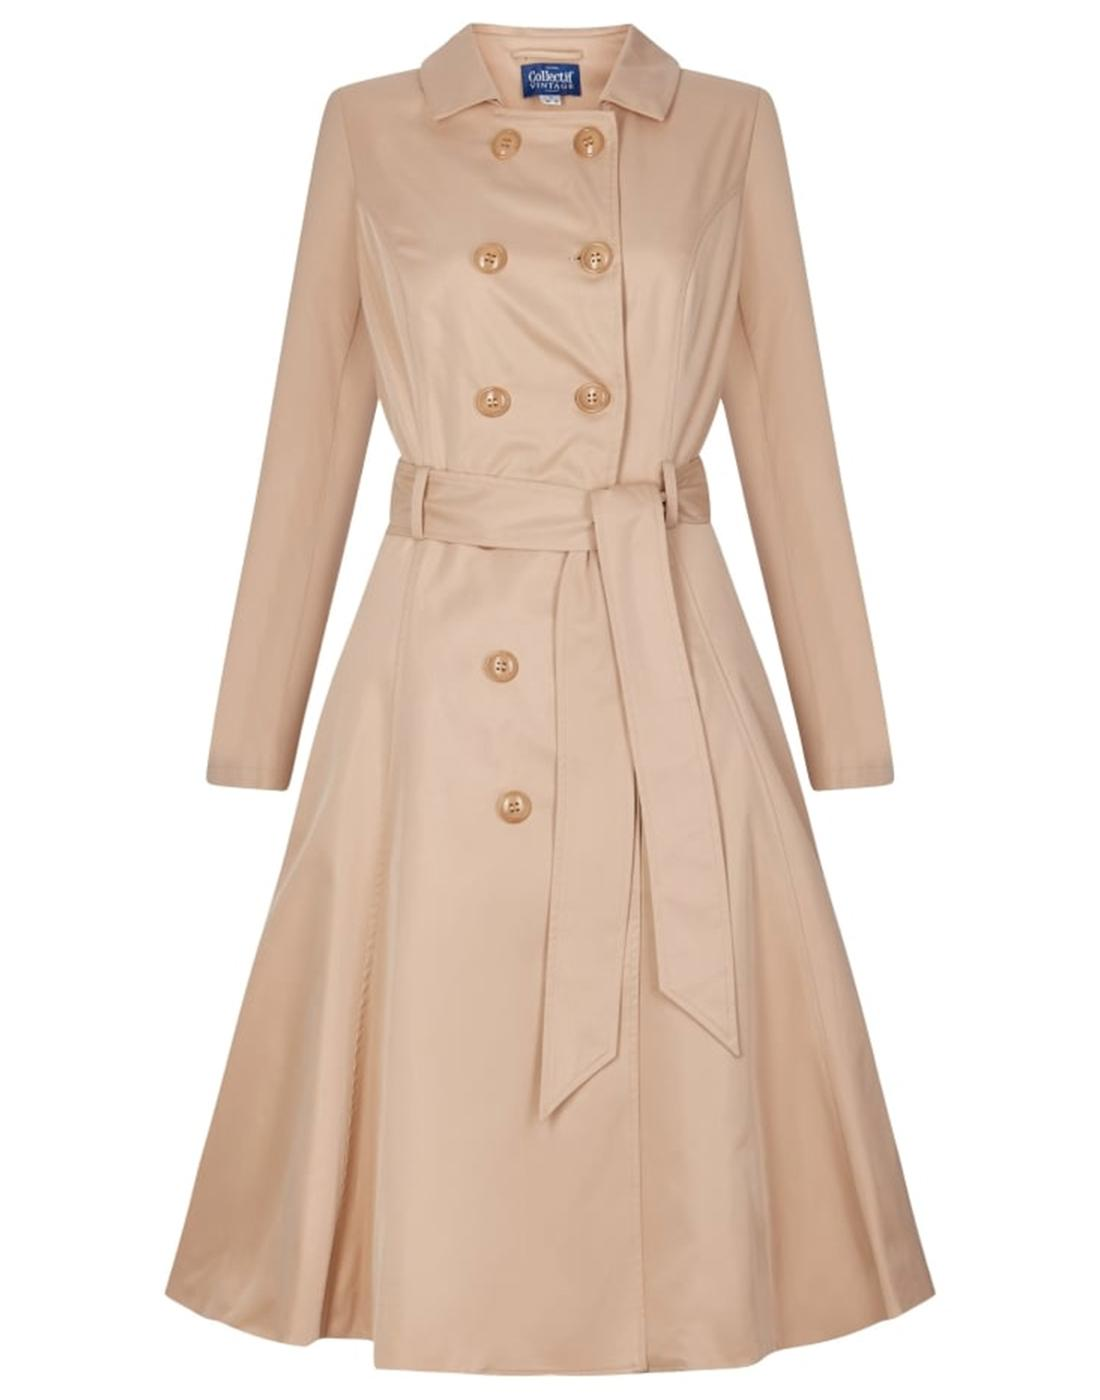 Korrina COLLECTIF Retro Vintage 50s Trench Coat B